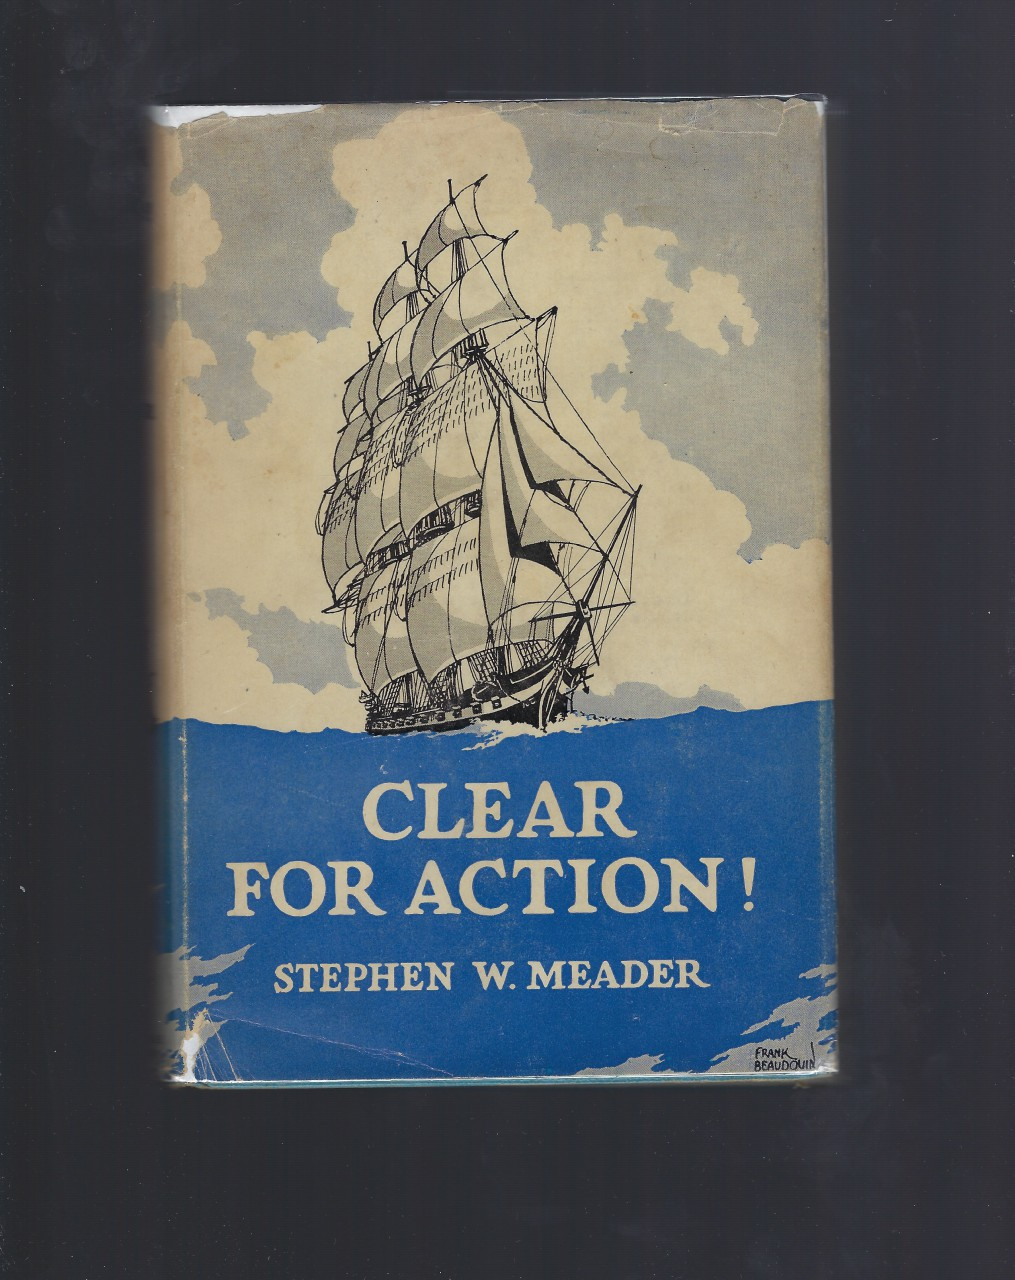 Clear for Action by Stephen W. Meader HB/DJ, Stephen W. Meader